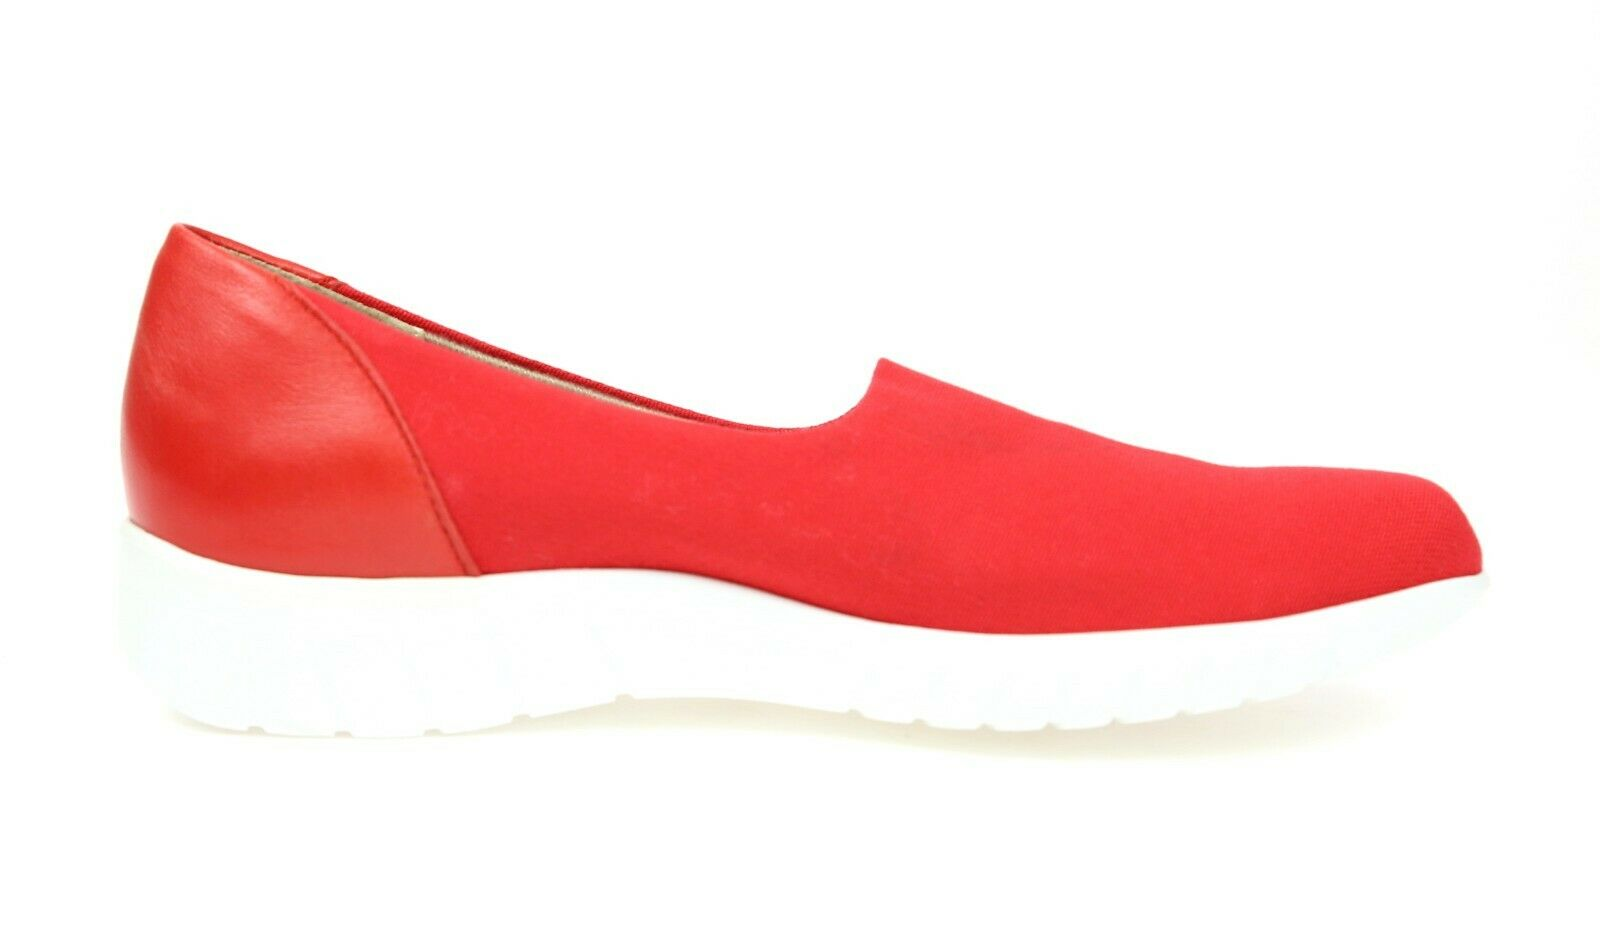 Munro Yacht Yacht Yacht Red Coral Stretch Canvas Slip On shoes Sz 6.5 N 1298 38ef53